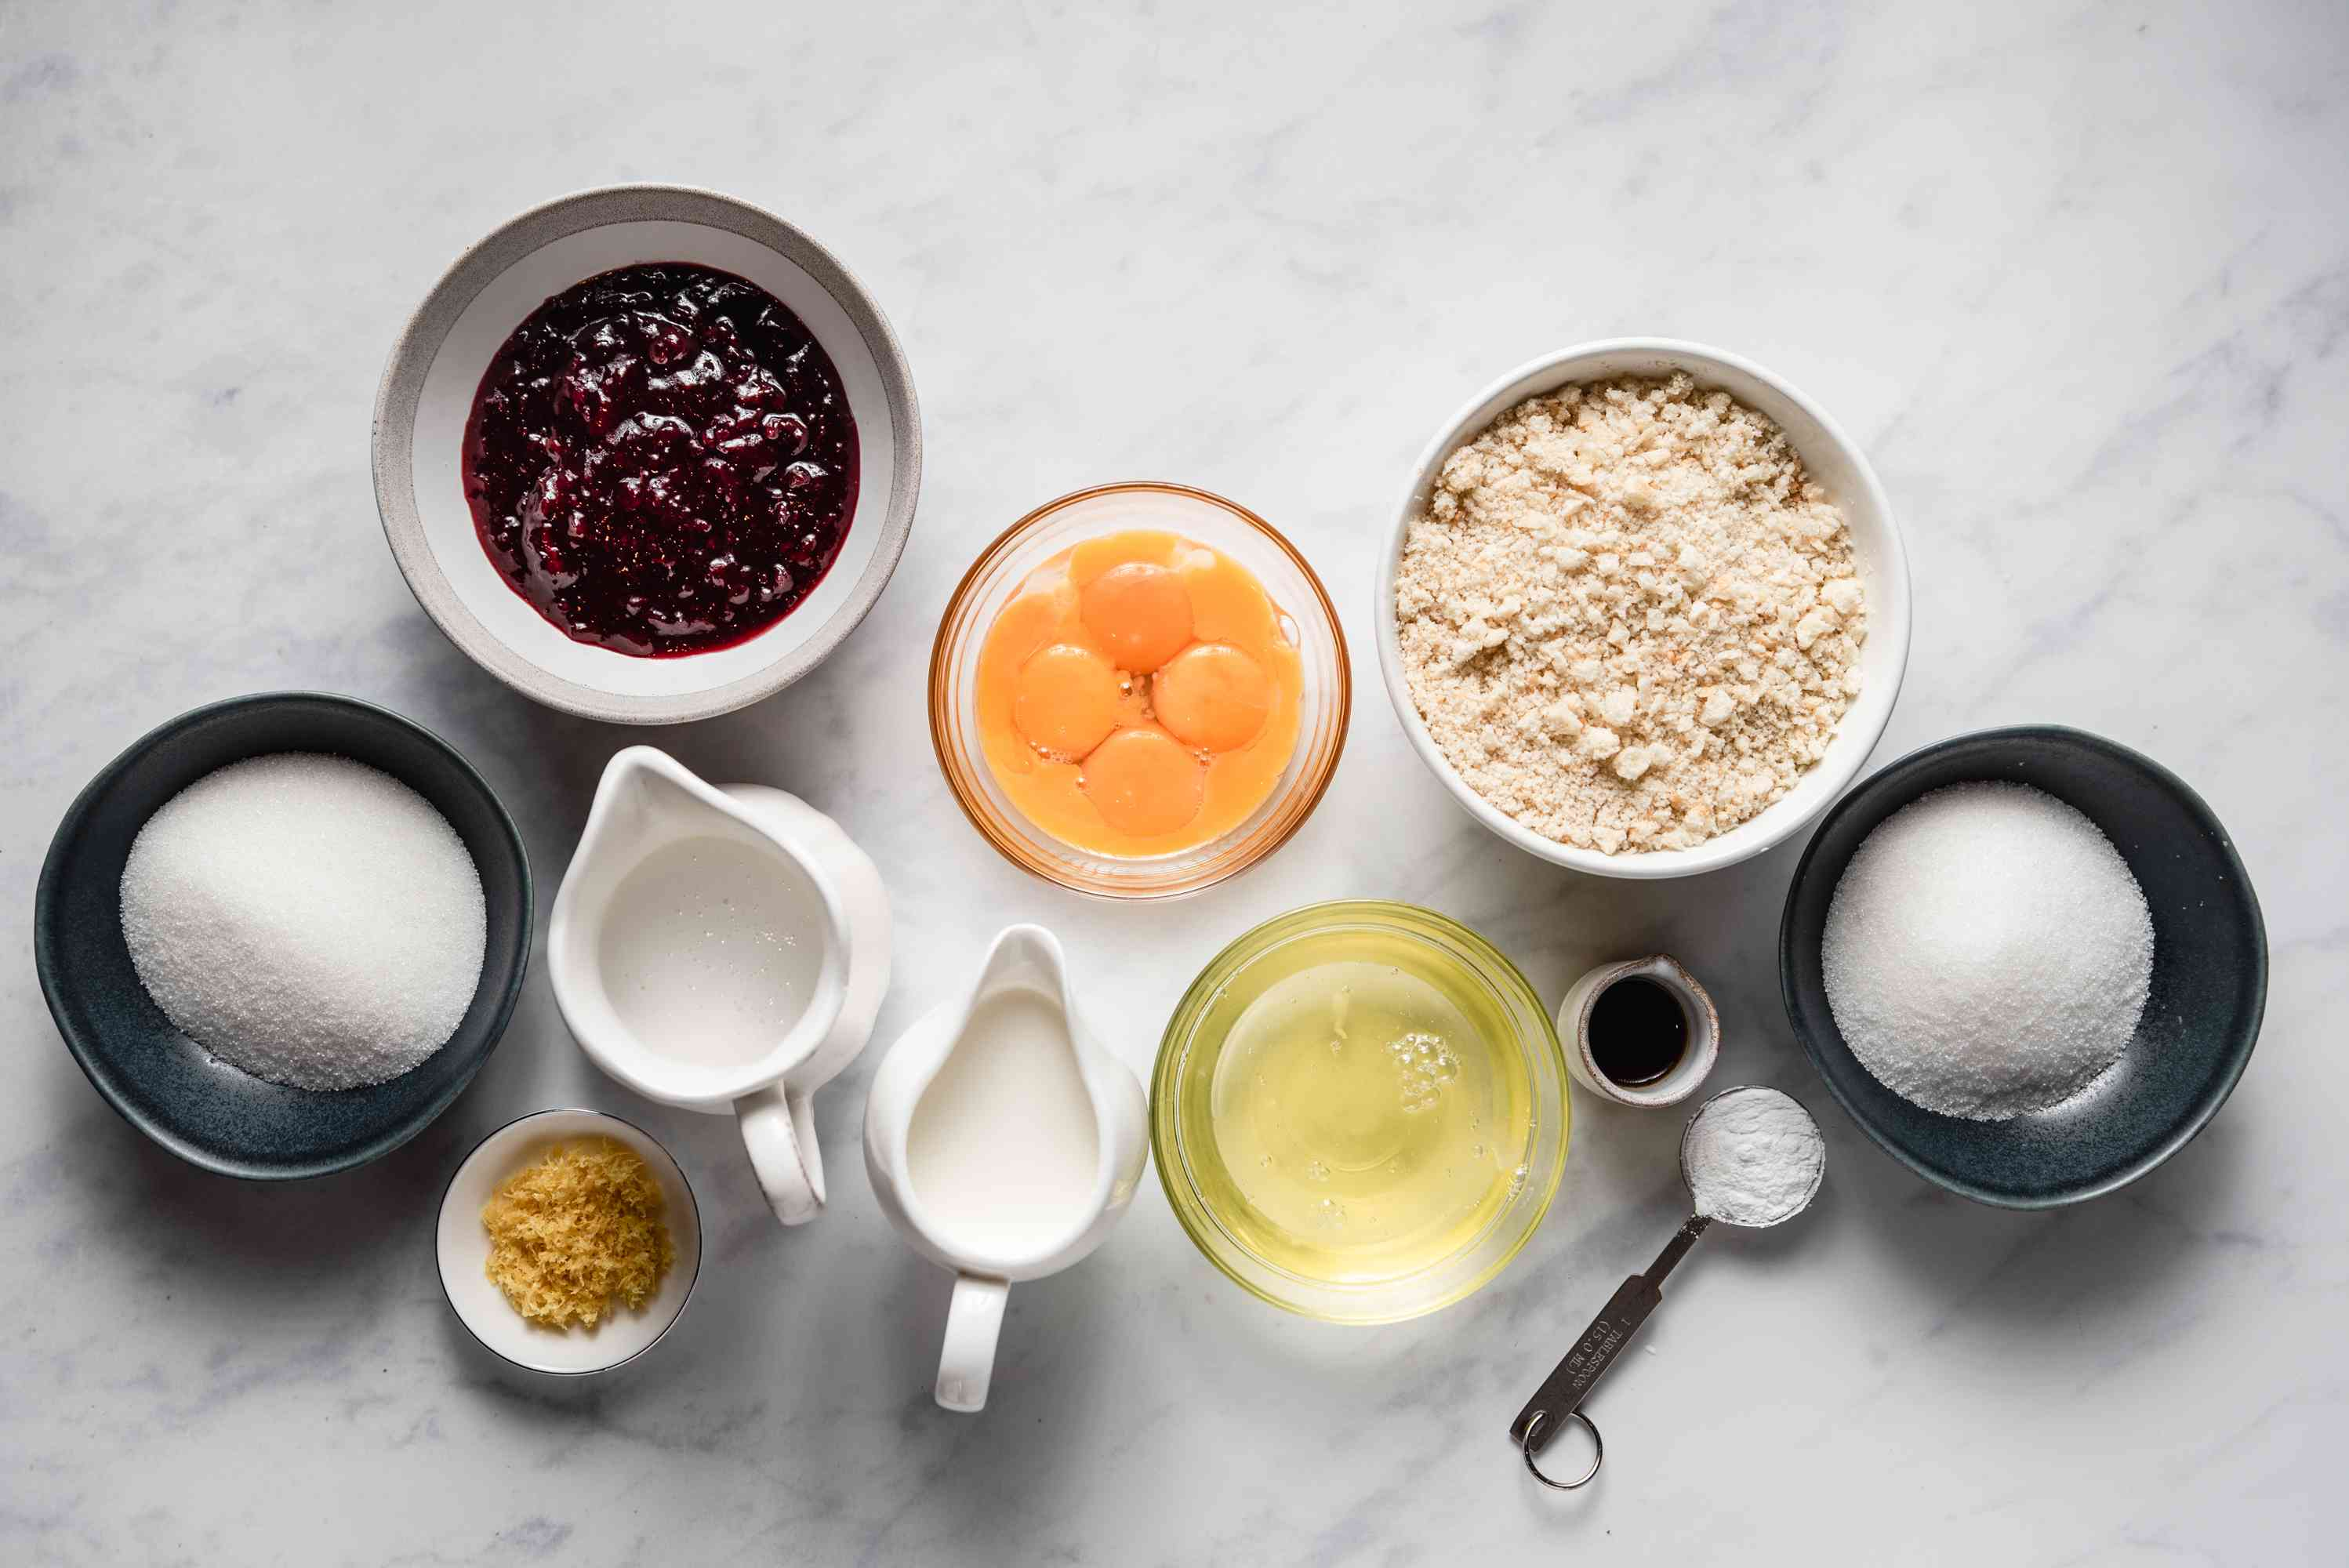 Ingredients for a traditional British queen of puddings